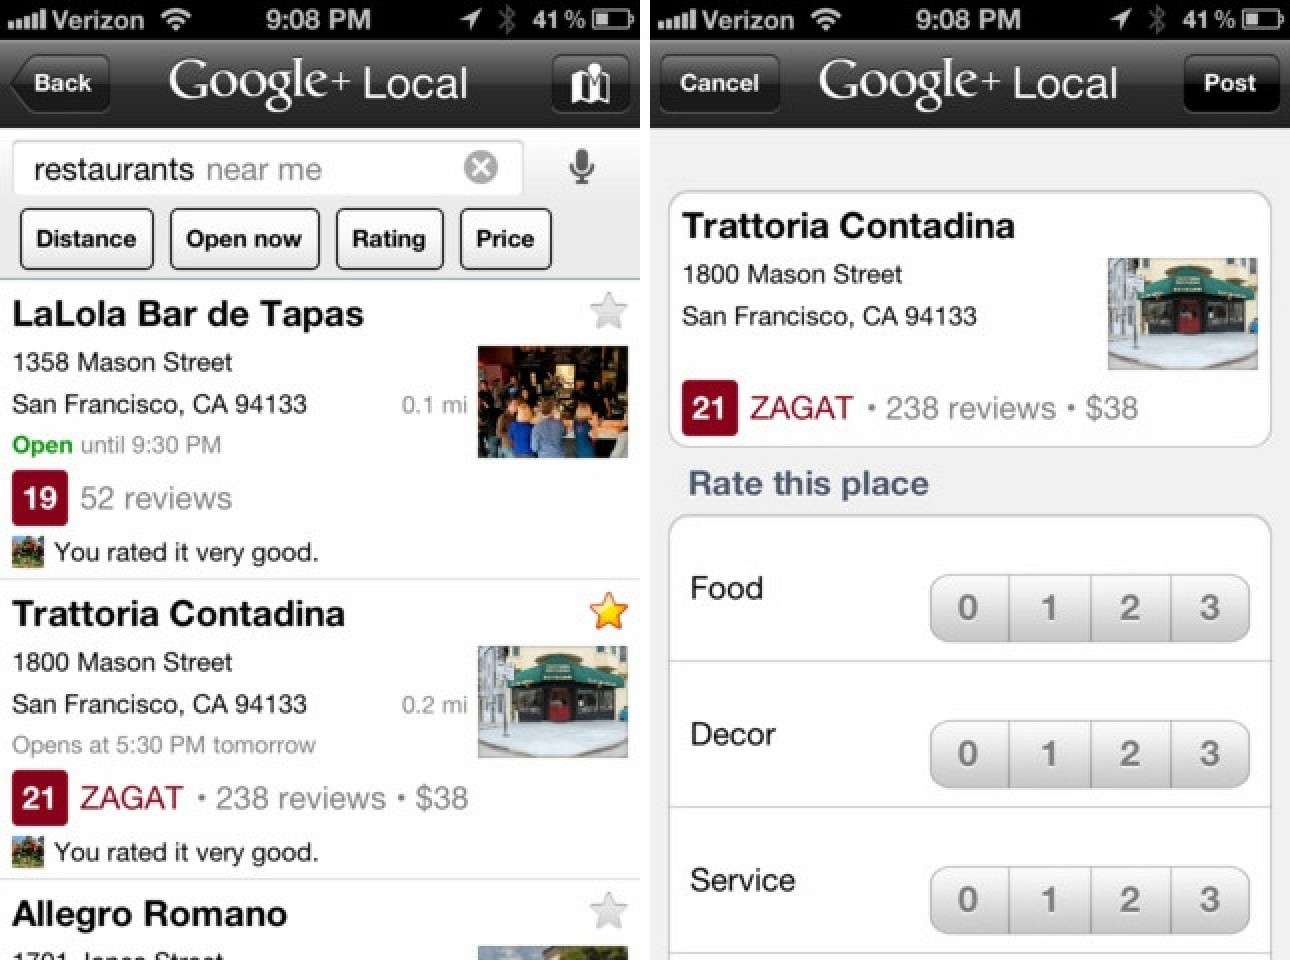 Google Removes Google+ Local App From the App Store